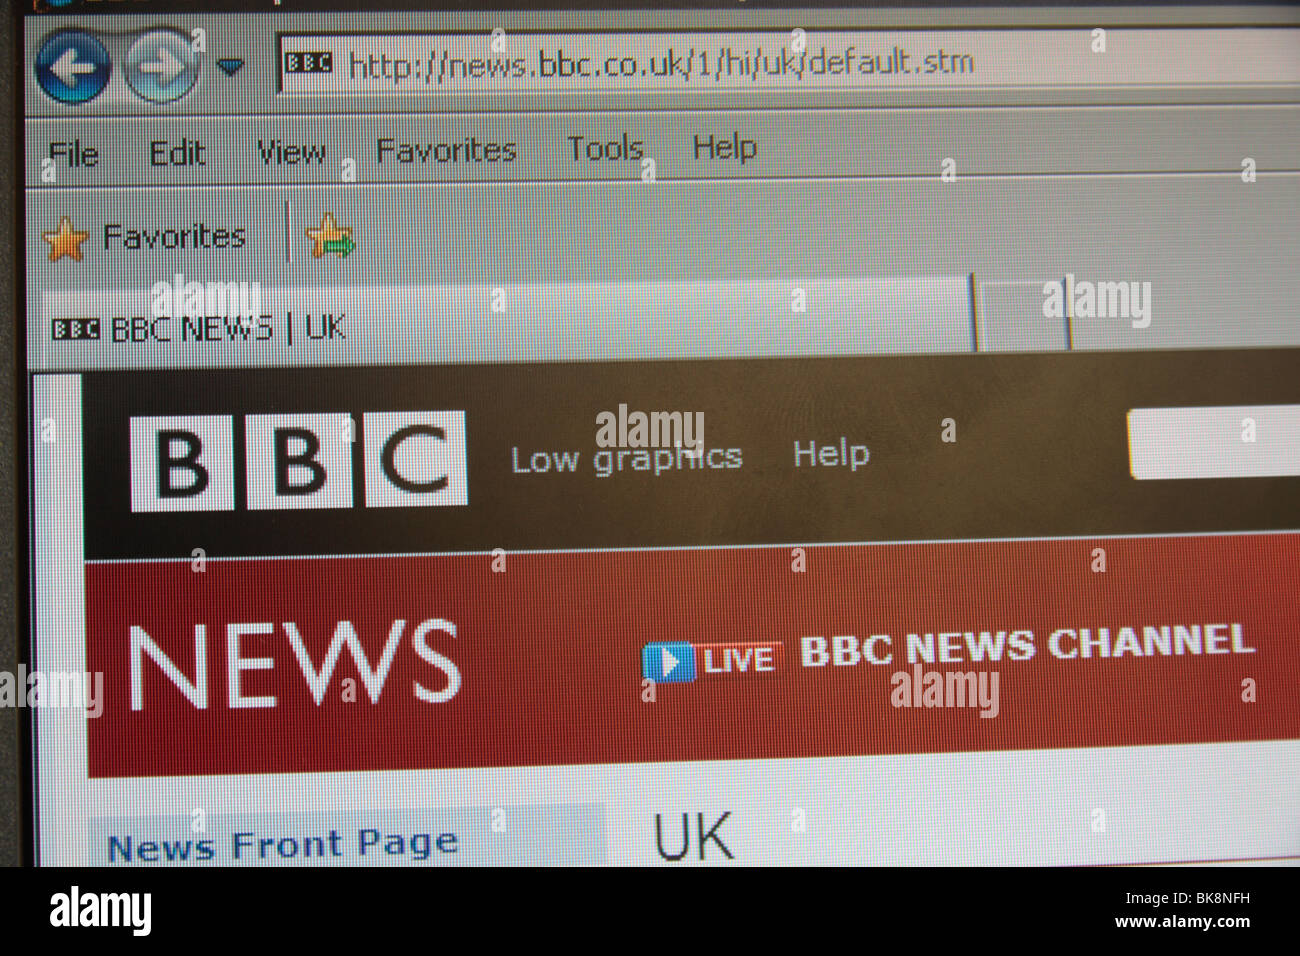 Screen shot of the BBC News web site i=using the explorer web browser. - Stock Image